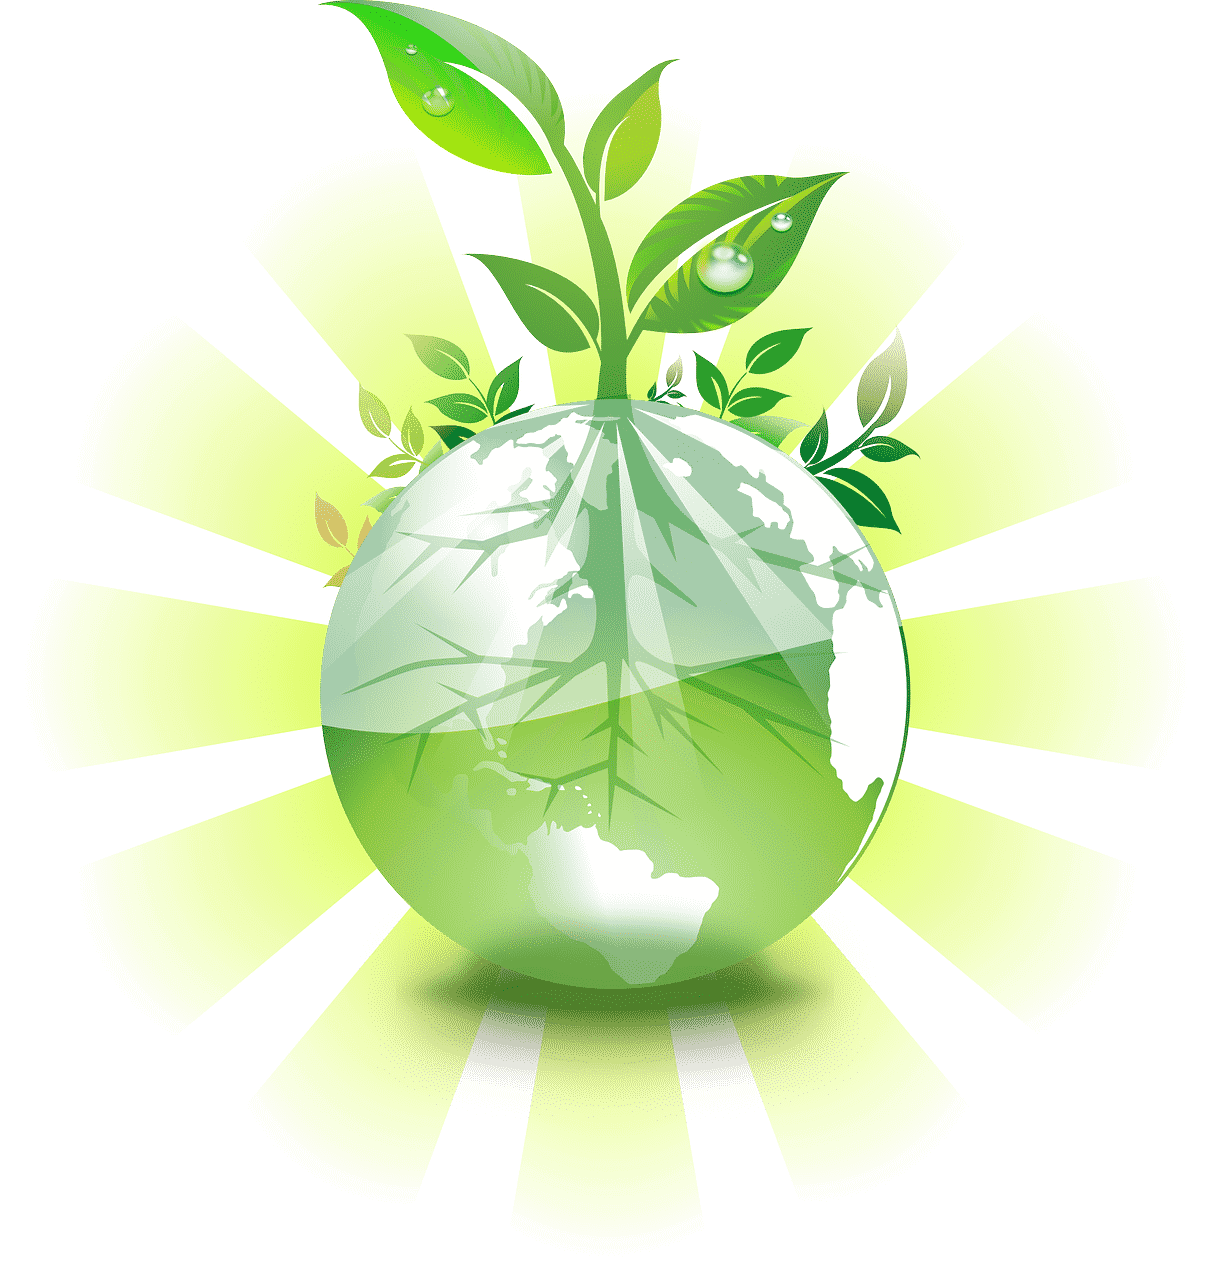 Earth natural protection pollution. Environment clipart environmental impact